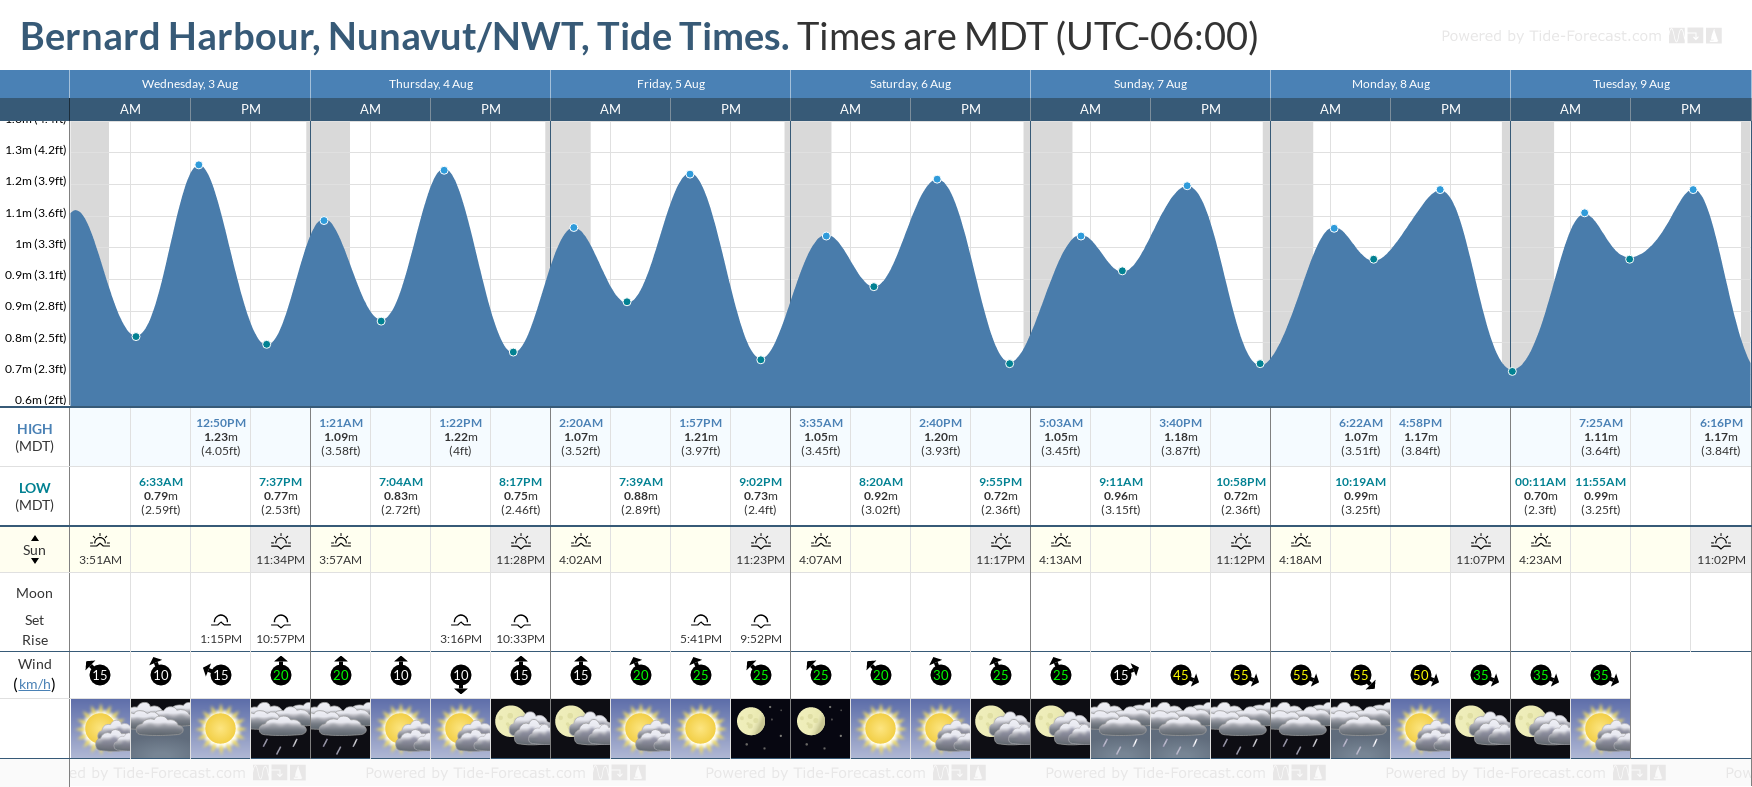 Bernard Harbour, Nunavut/NWT Tide Chart including high and low tide tide times for the next 7 days